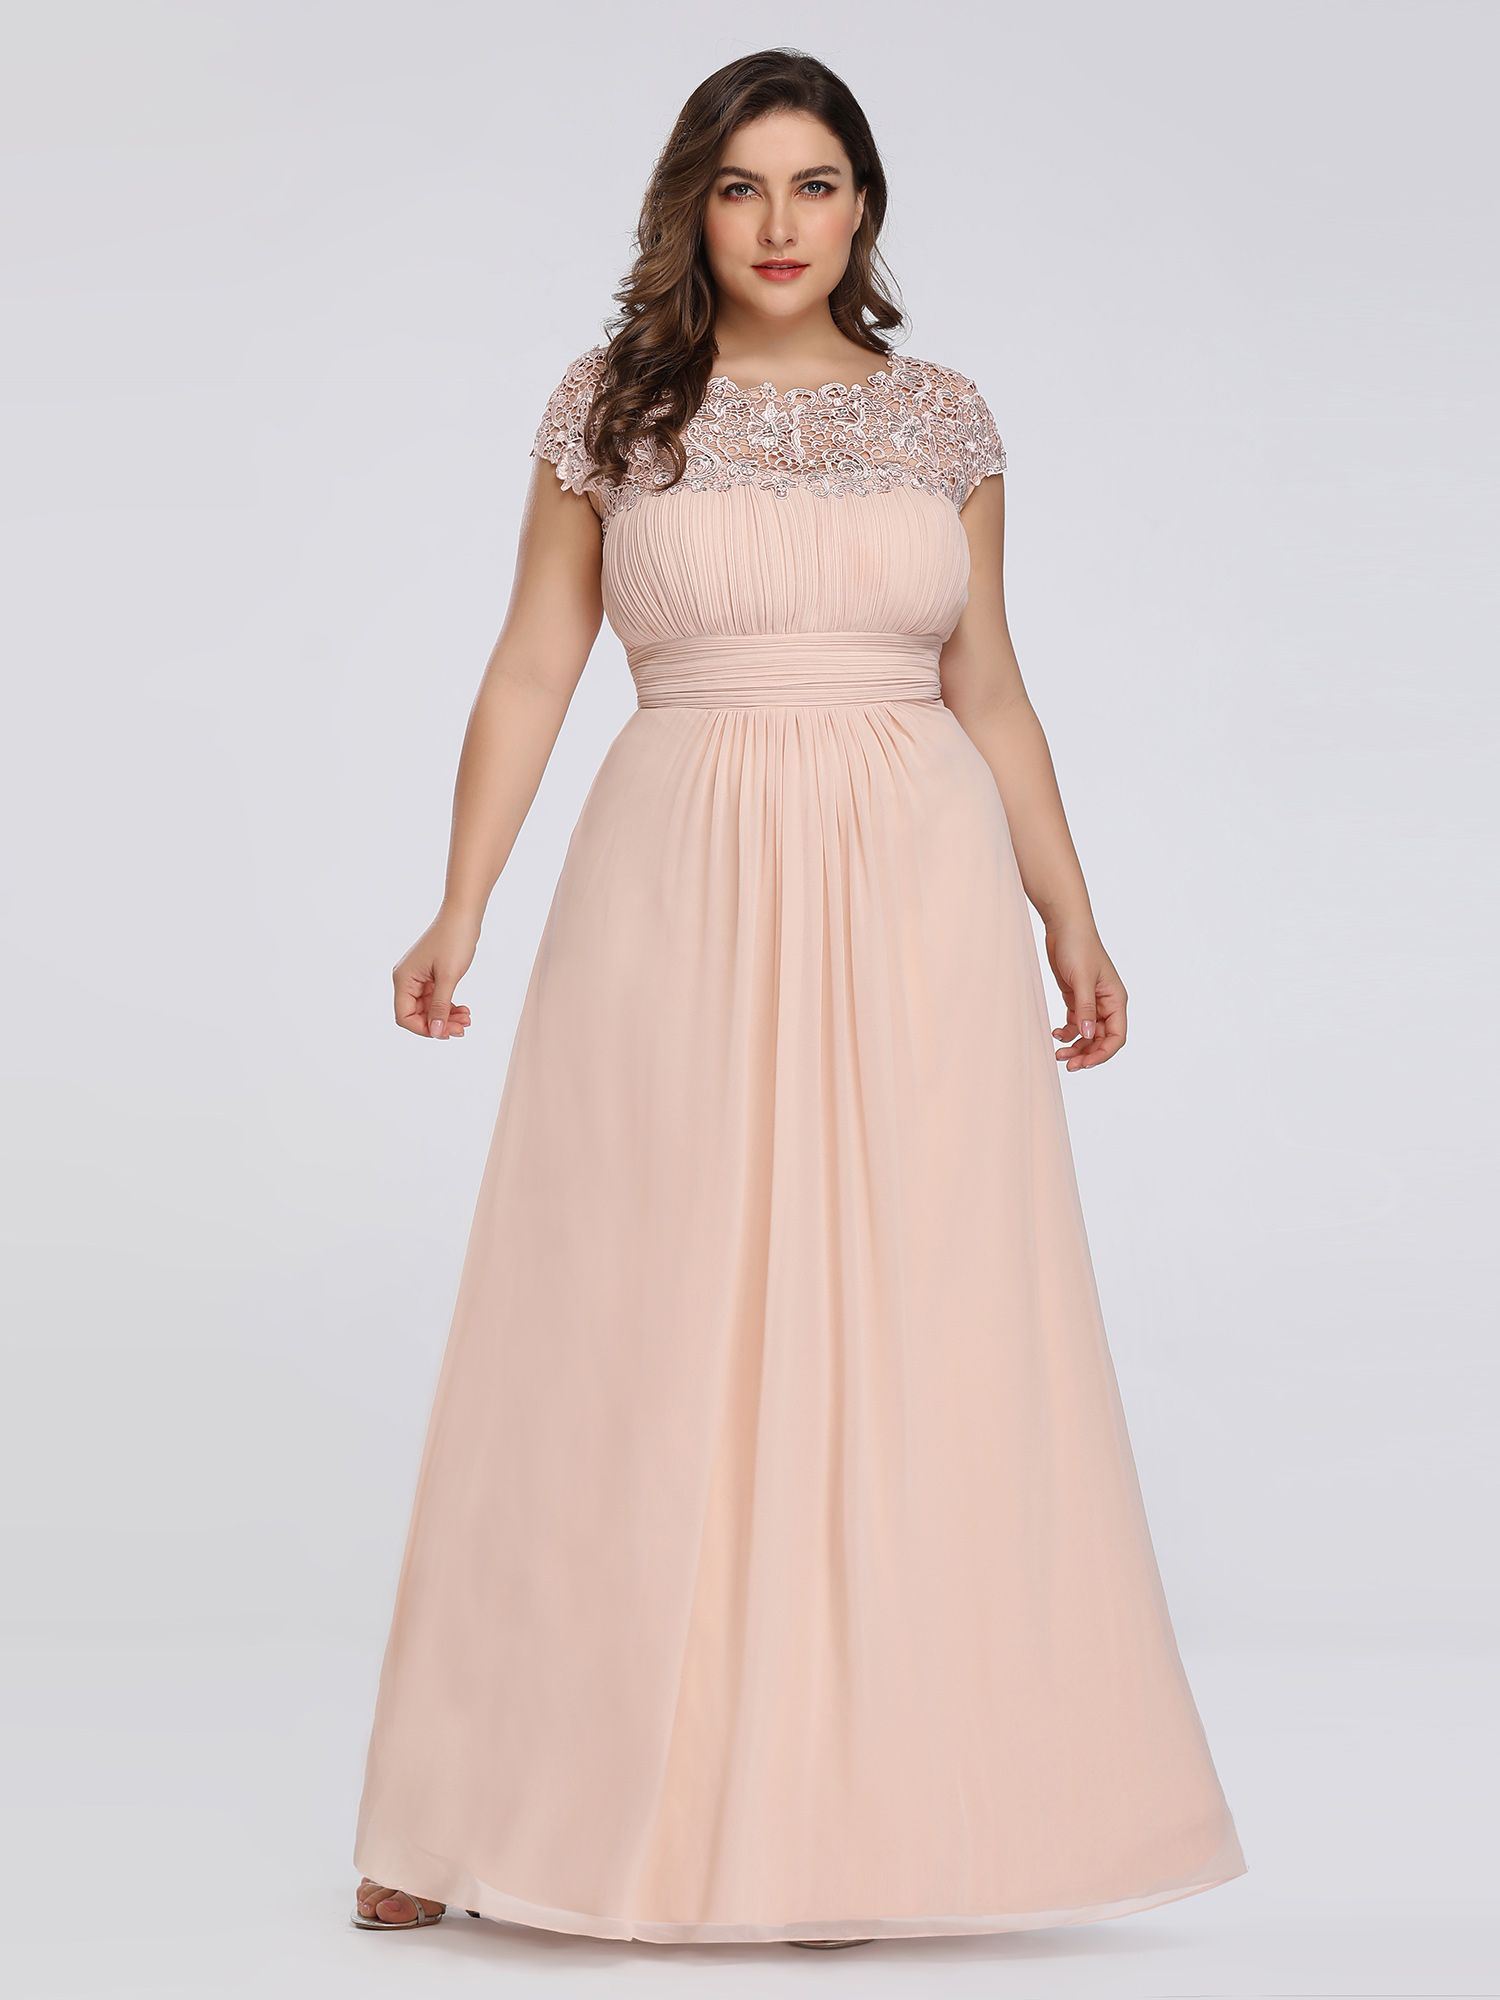 Pin By Renata Pena On Casamento Civil In 2021 Mother Of The Bride Dresses Plus Size Evening Gown Chiffon Evening Dresses [ 2000 x 1500 Pixel ]